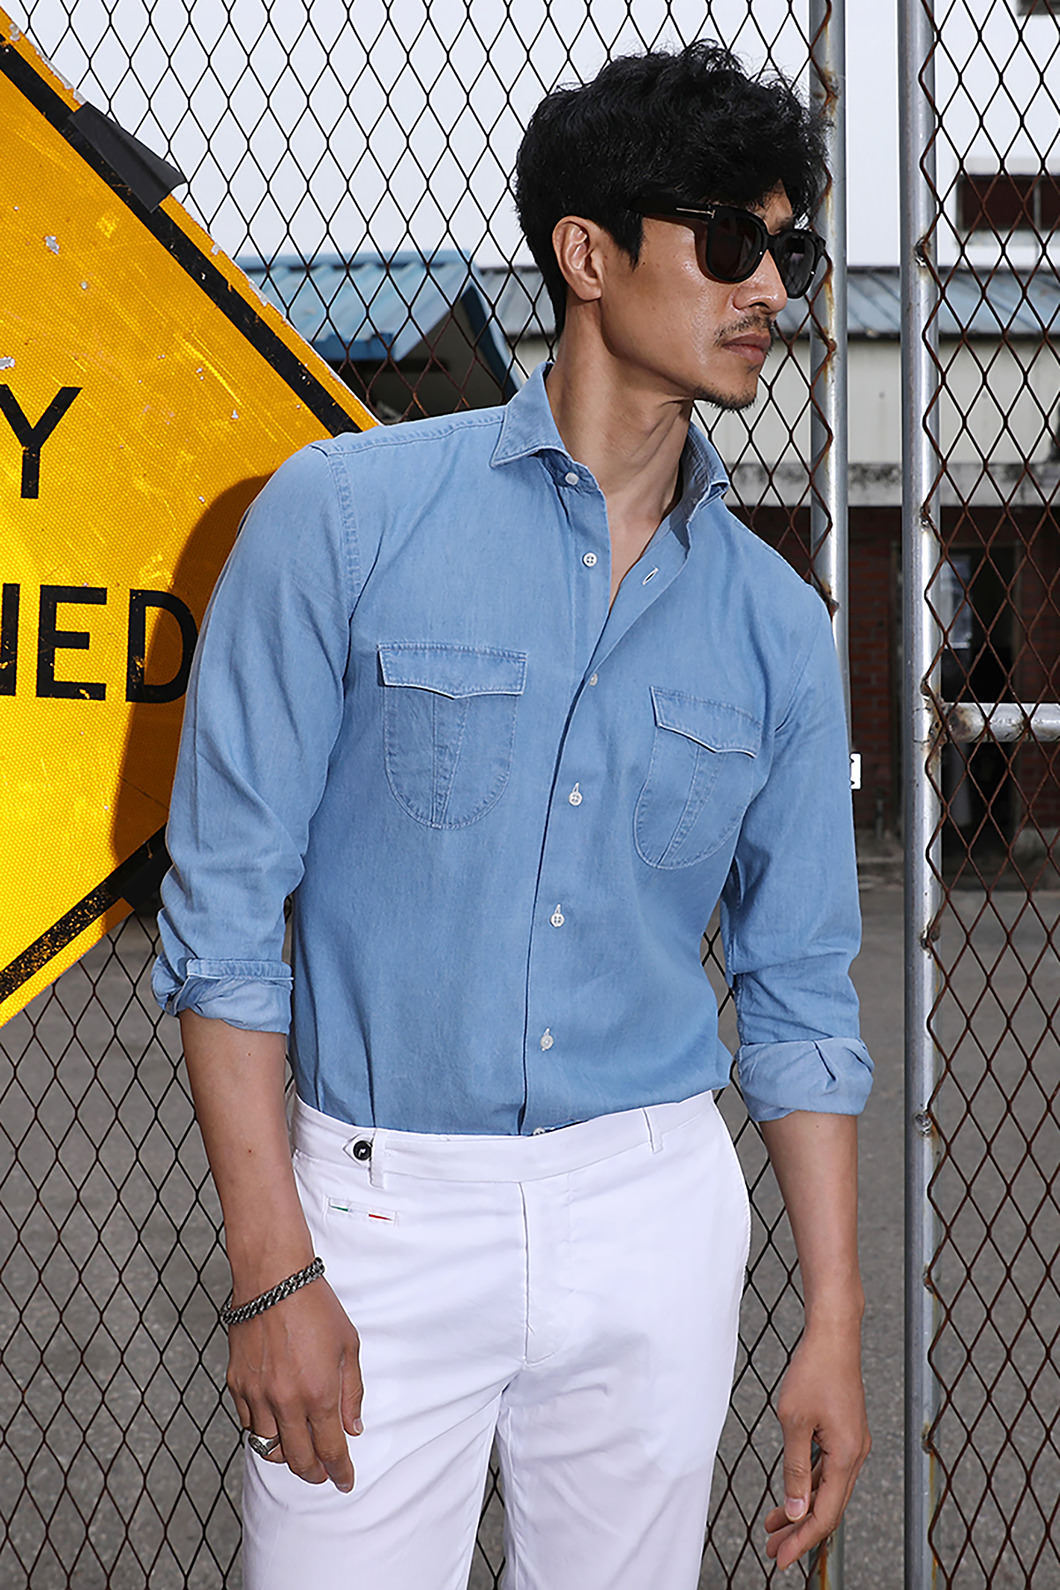 TAKE482 ITALIA A&C WASHED DENIM POCKET SHIRT-SKY BLUE품절임박!